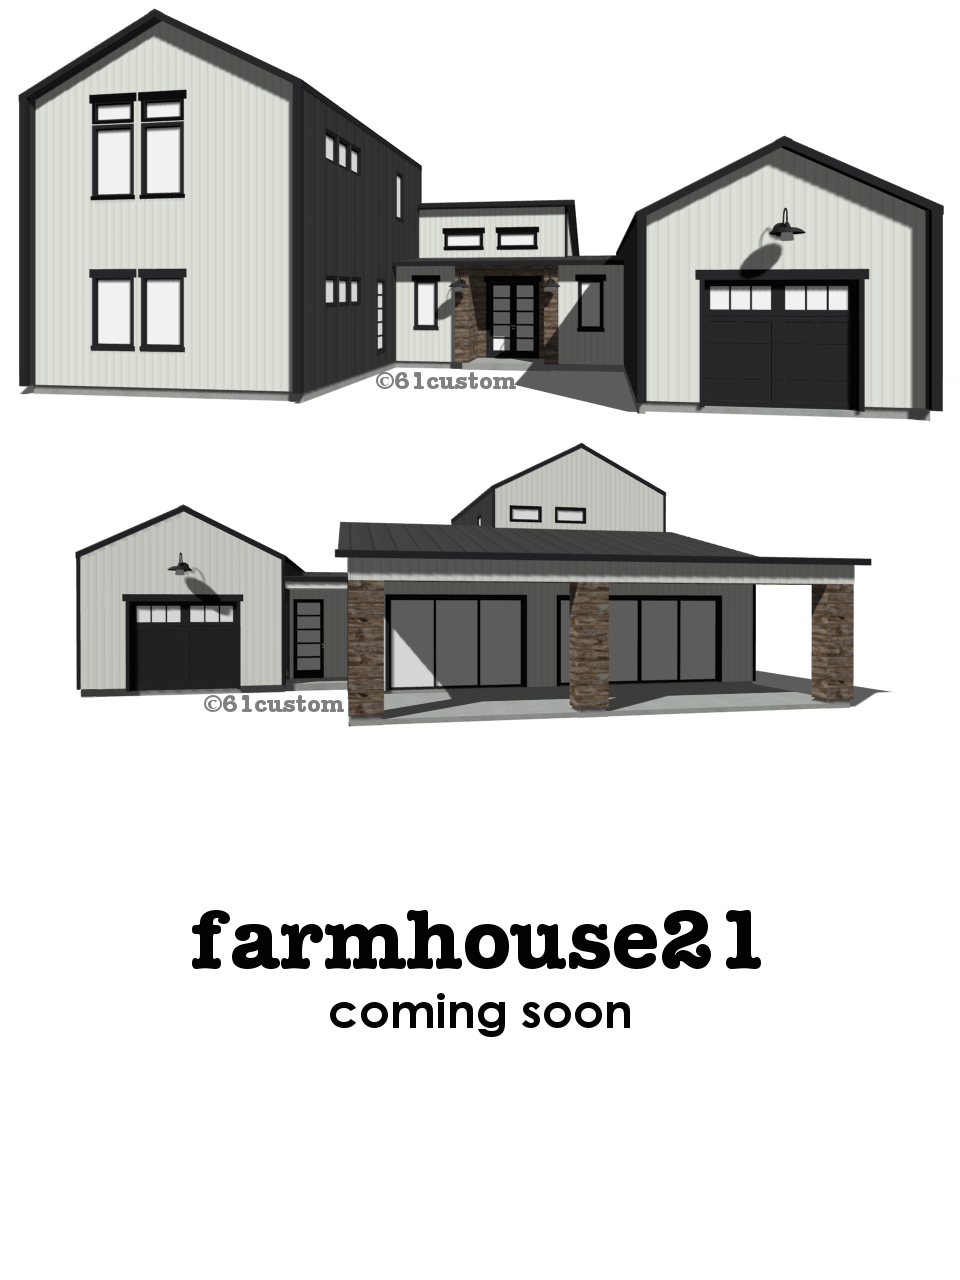 farmhouse21 modern farmhouse plan 61custom - Modern Farmhouse Plans